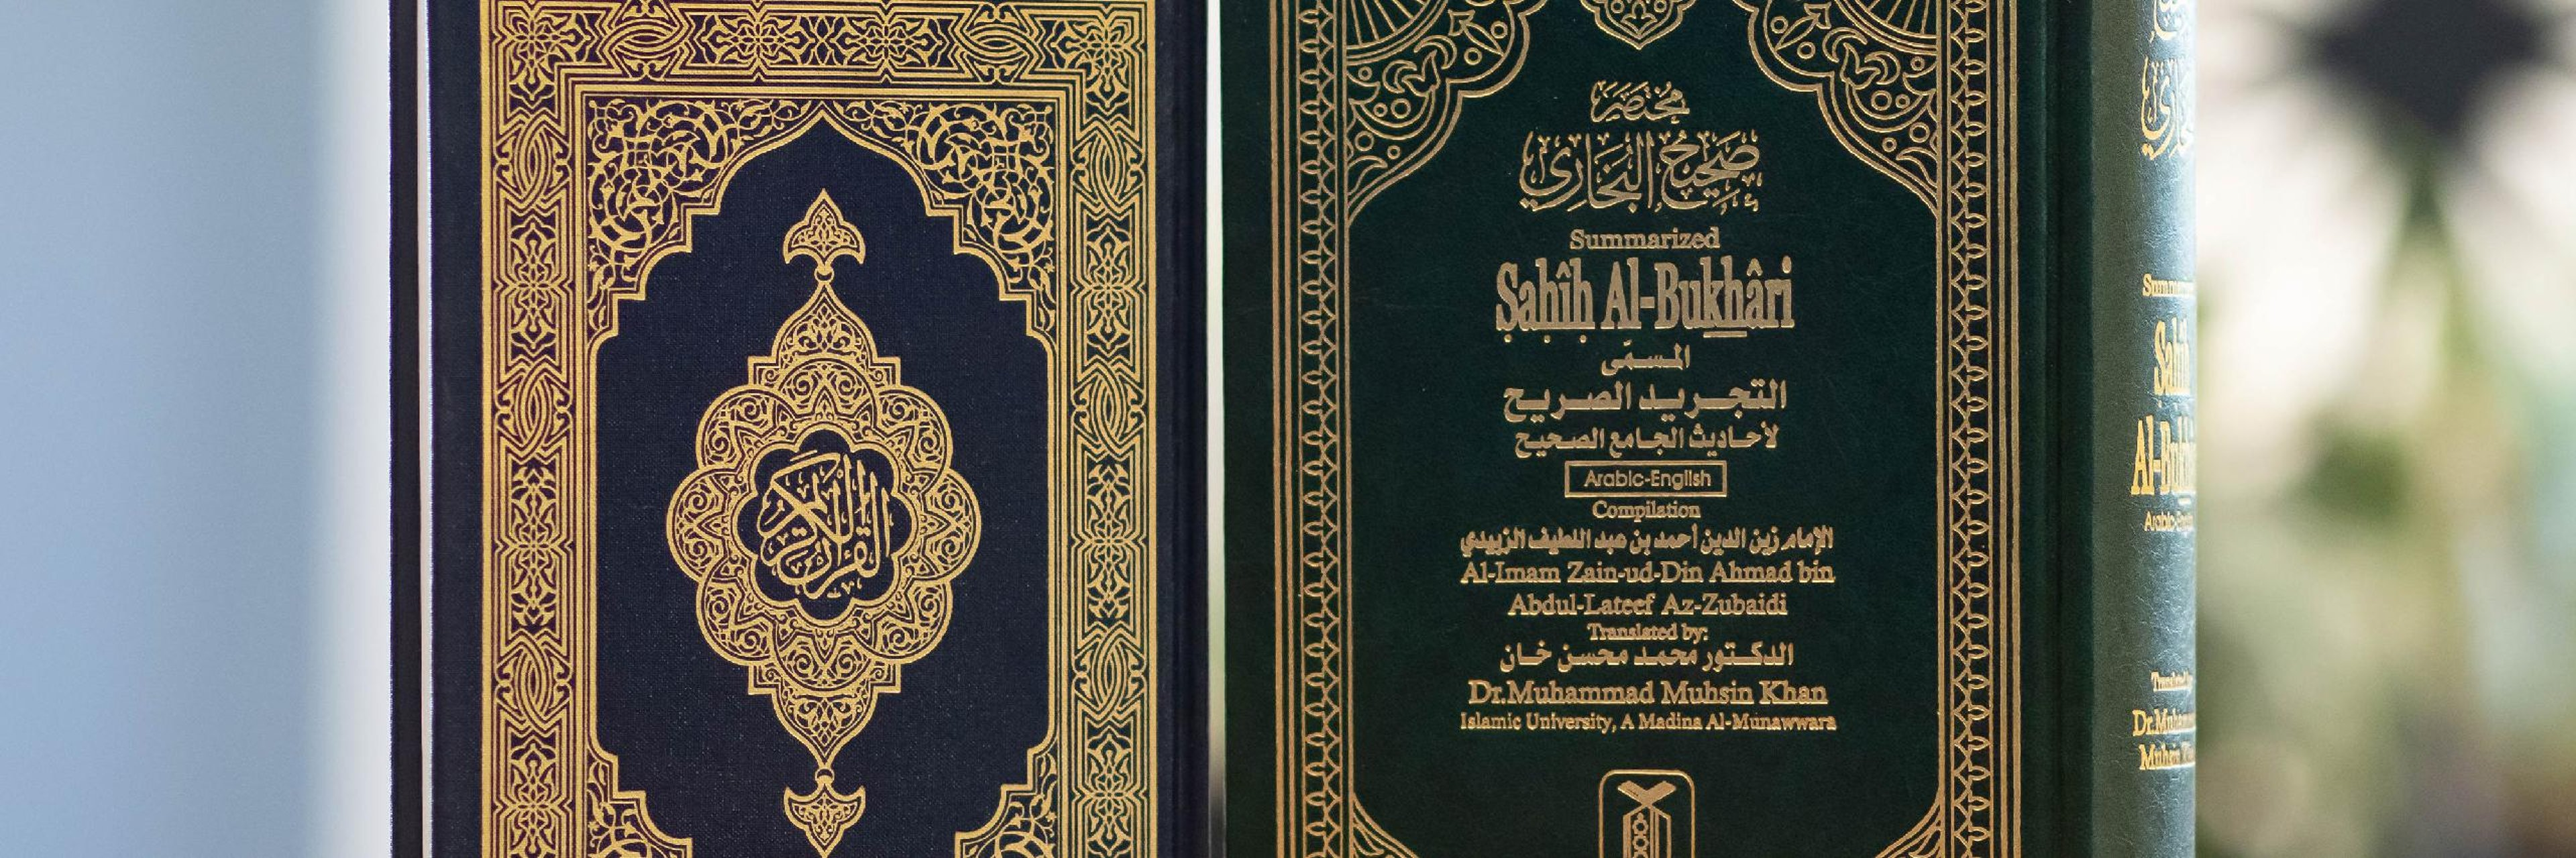 Are Hadith Necessary? An Examination of the Authority of Hadith in Islam